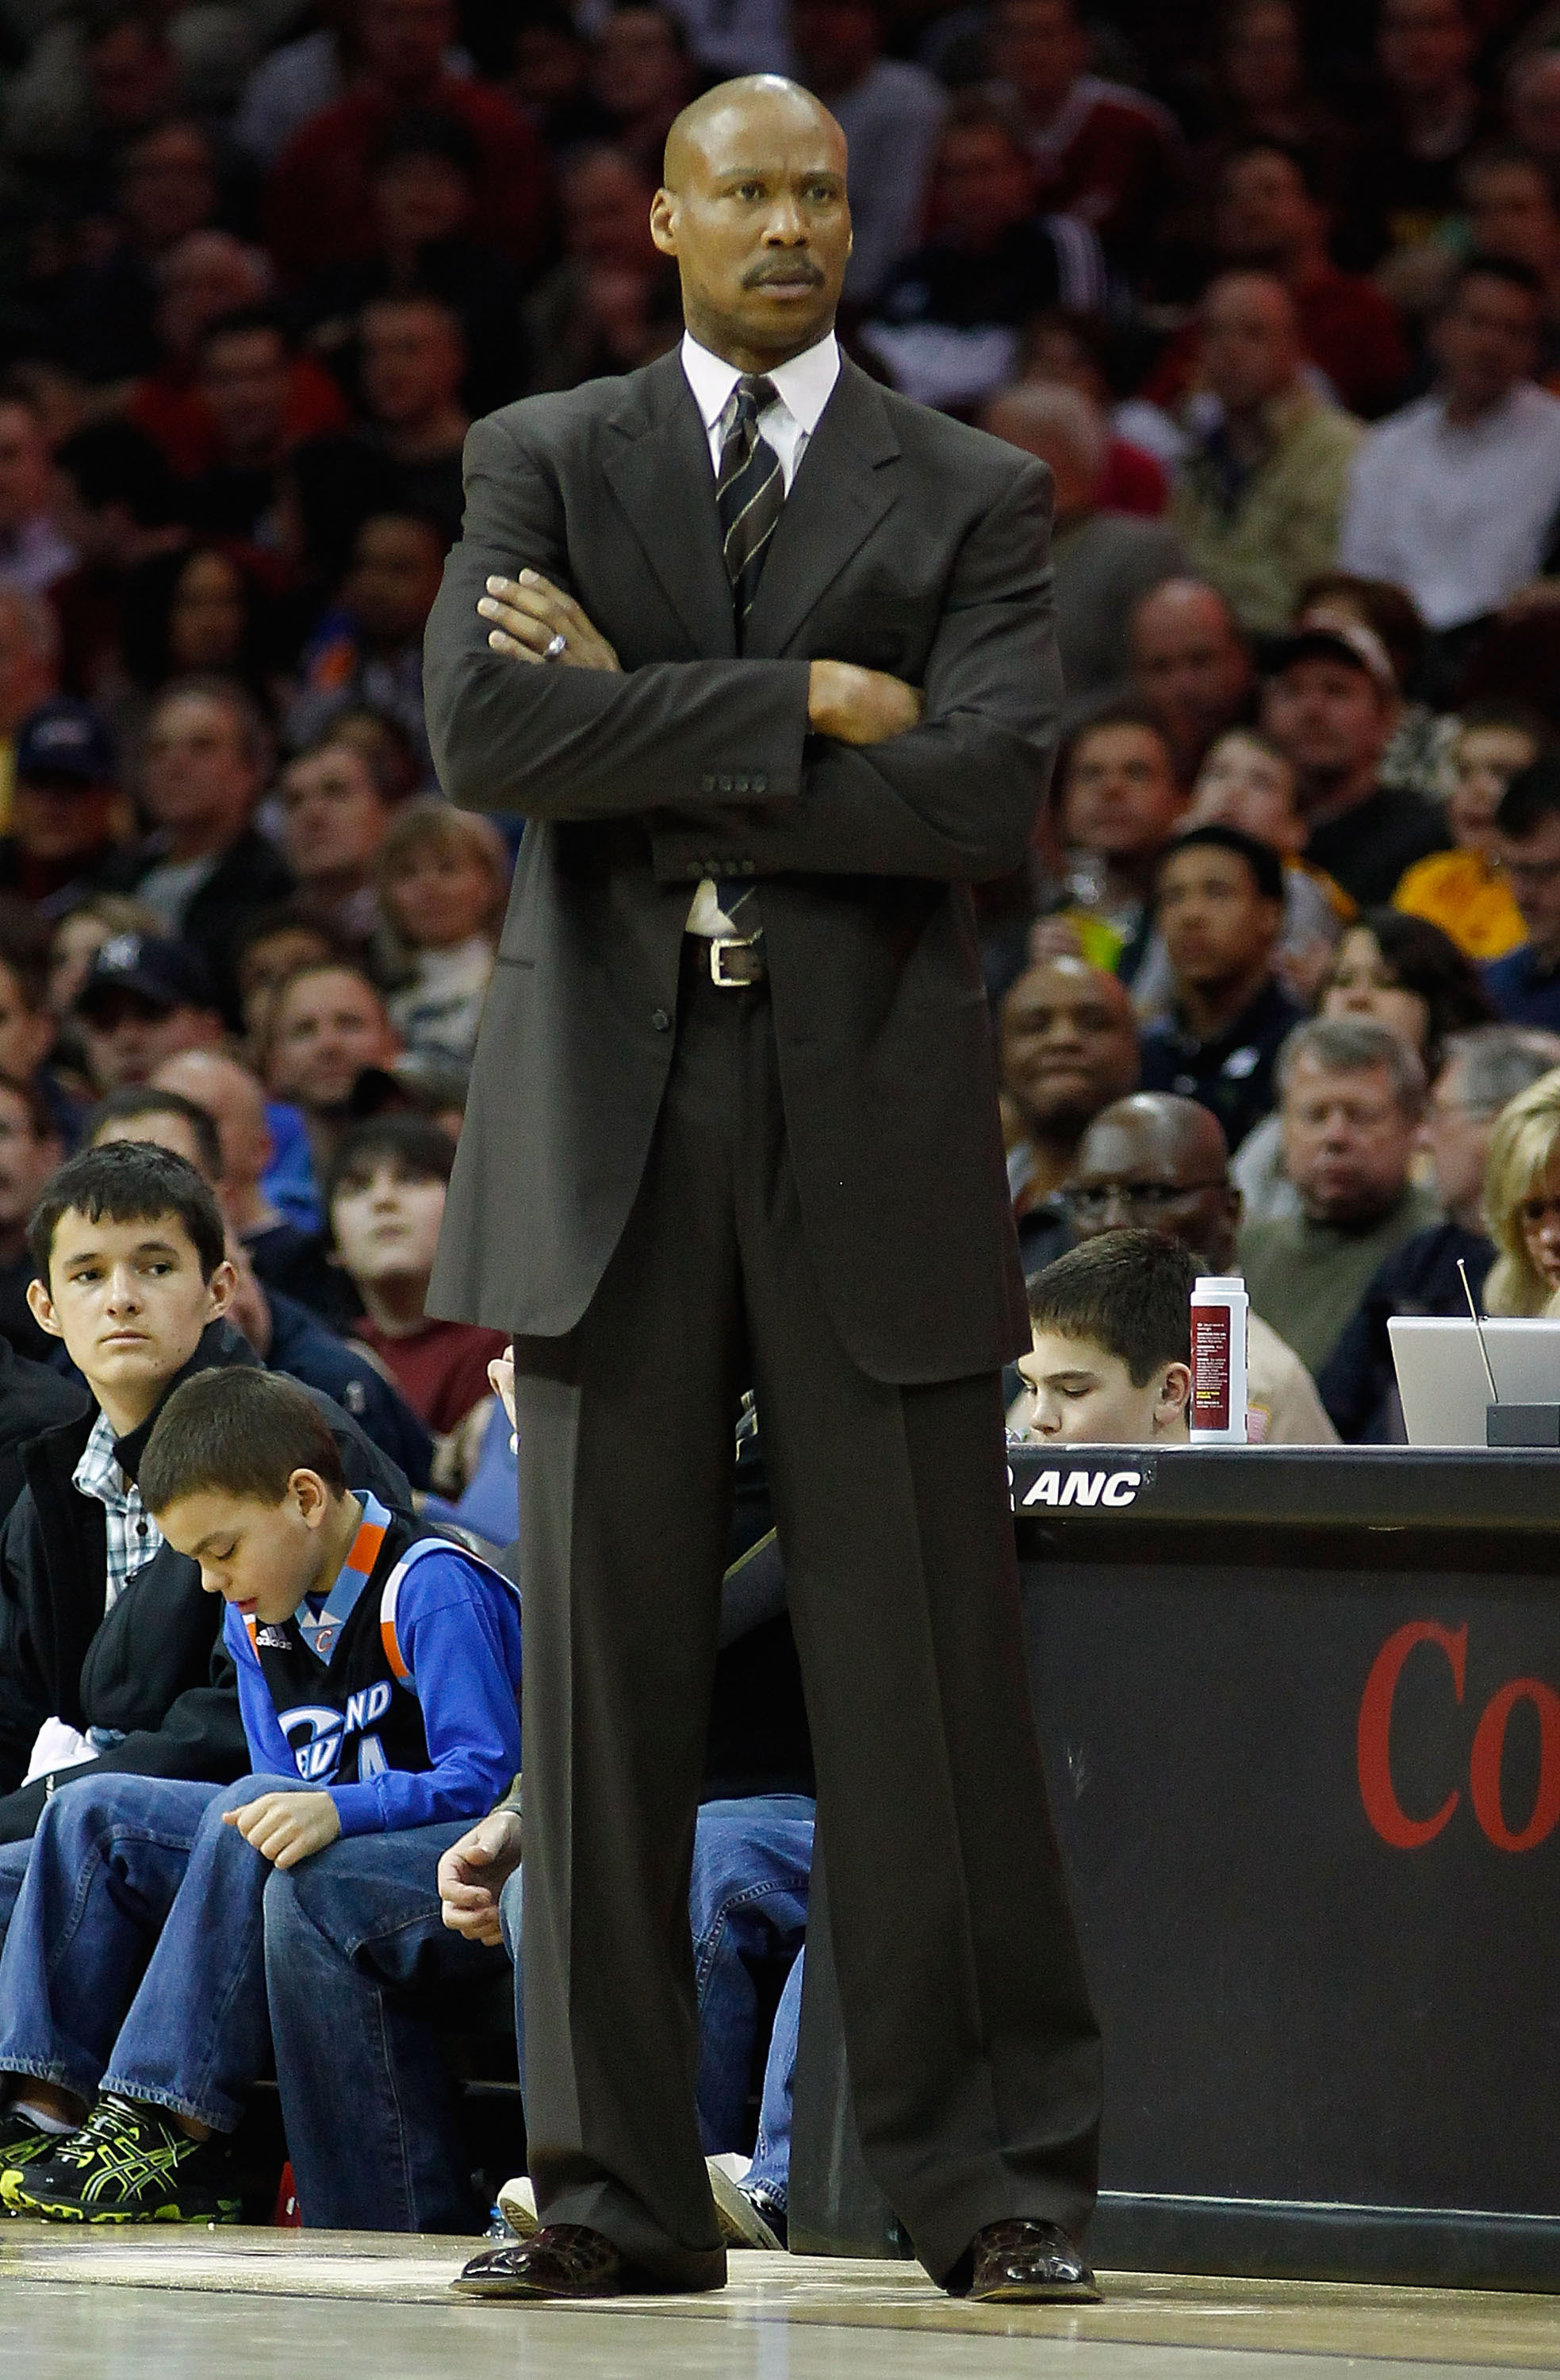 CLEVELAND - FEBRUARY 25:  Head coach Byron Scott of the Cleveland Cavaliers watches his team play against the New York Knicks during the game on February 25, 2011 at Quicken Loans Arena in Cleveland, Ohio. NOTE TO USER: User expressly acknowledges and agr